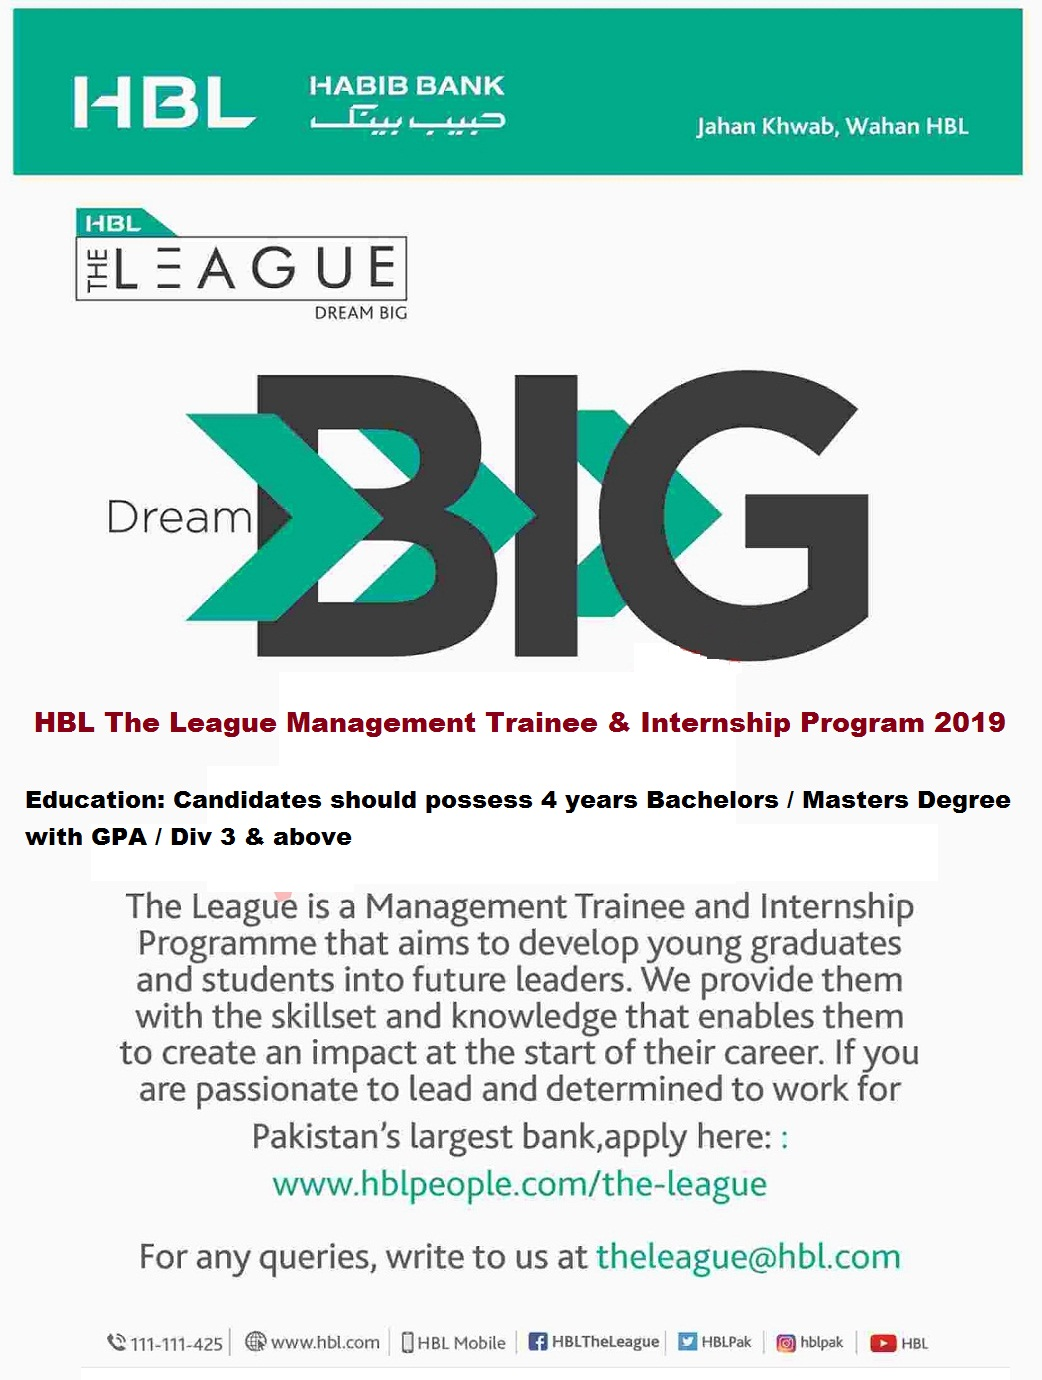 Latest HBL Vacancies 2019  HBL Management Trainee Officers Jobs Feb 2019 : MTO Vacancies 500 Overall Pakistan Can Apply